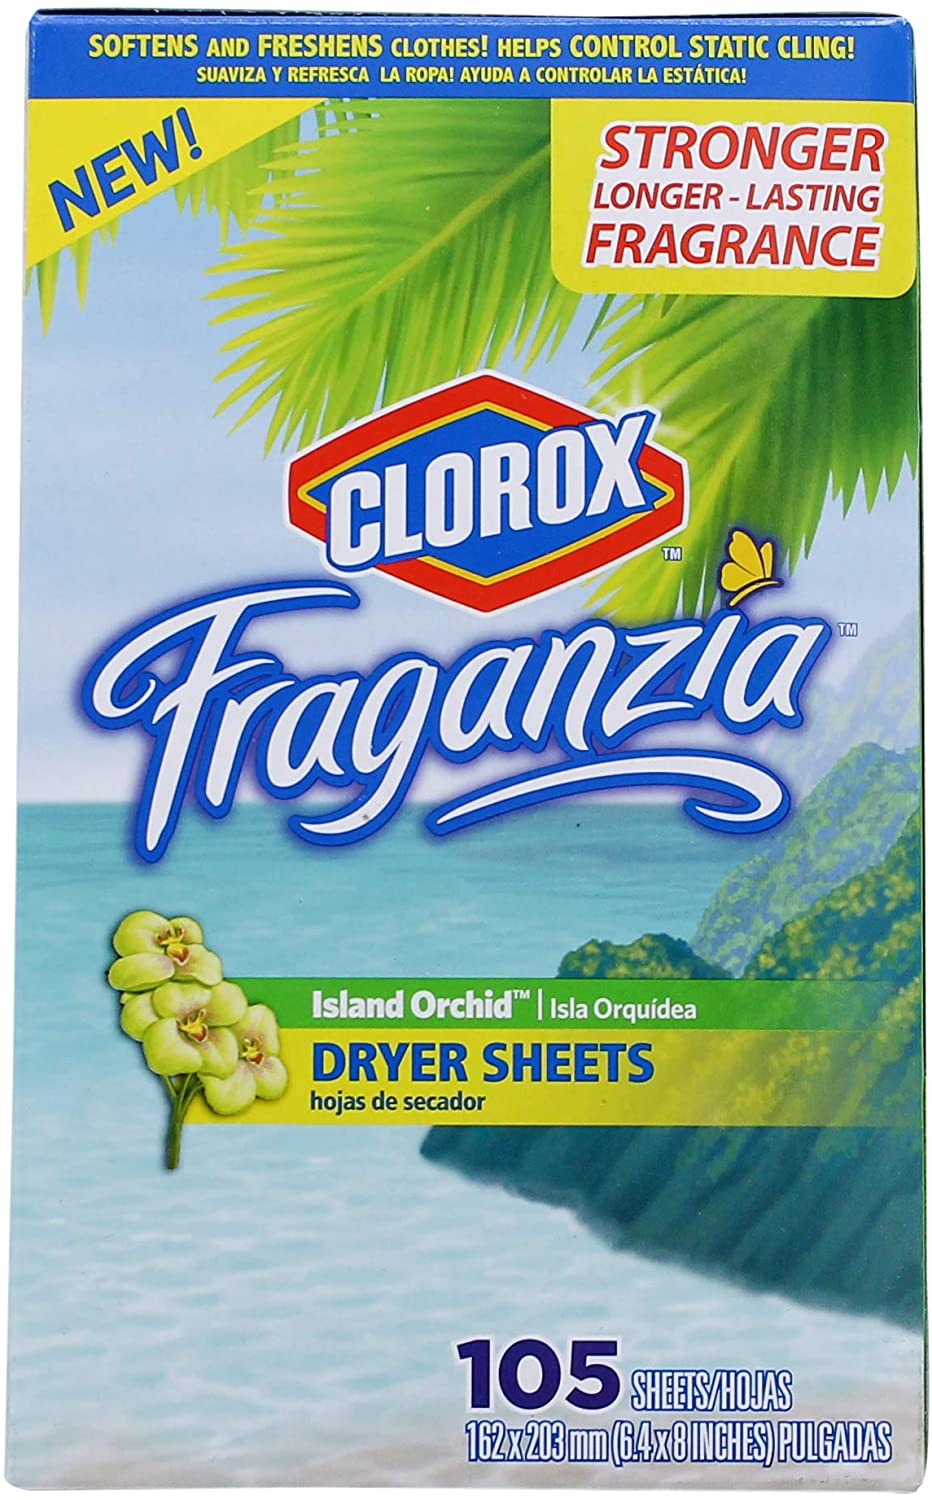 Clorox Fraganzia Fabric Softener Dryer Sheets | Scented Laundry Dryer Sheets for Great Smelling Clothes | Island Orchid Scent Laundry Sheets, 105 Count - 6 Pack